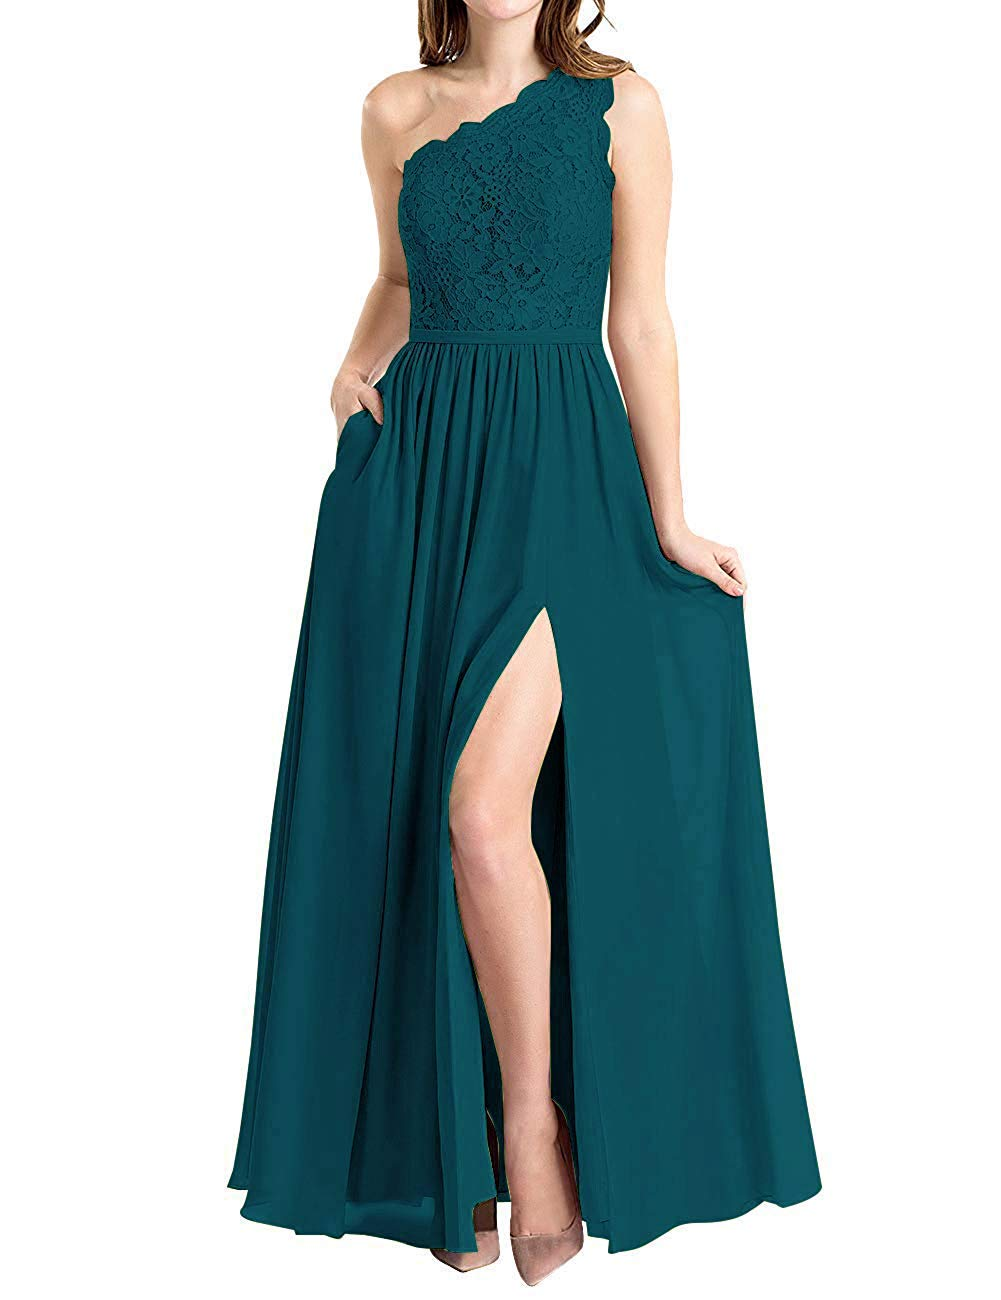 Liaoye Womens Sweetheart Ruched Chiffon High Low Bridesmaid Dress 2019 Evening Wedding Party Gowns